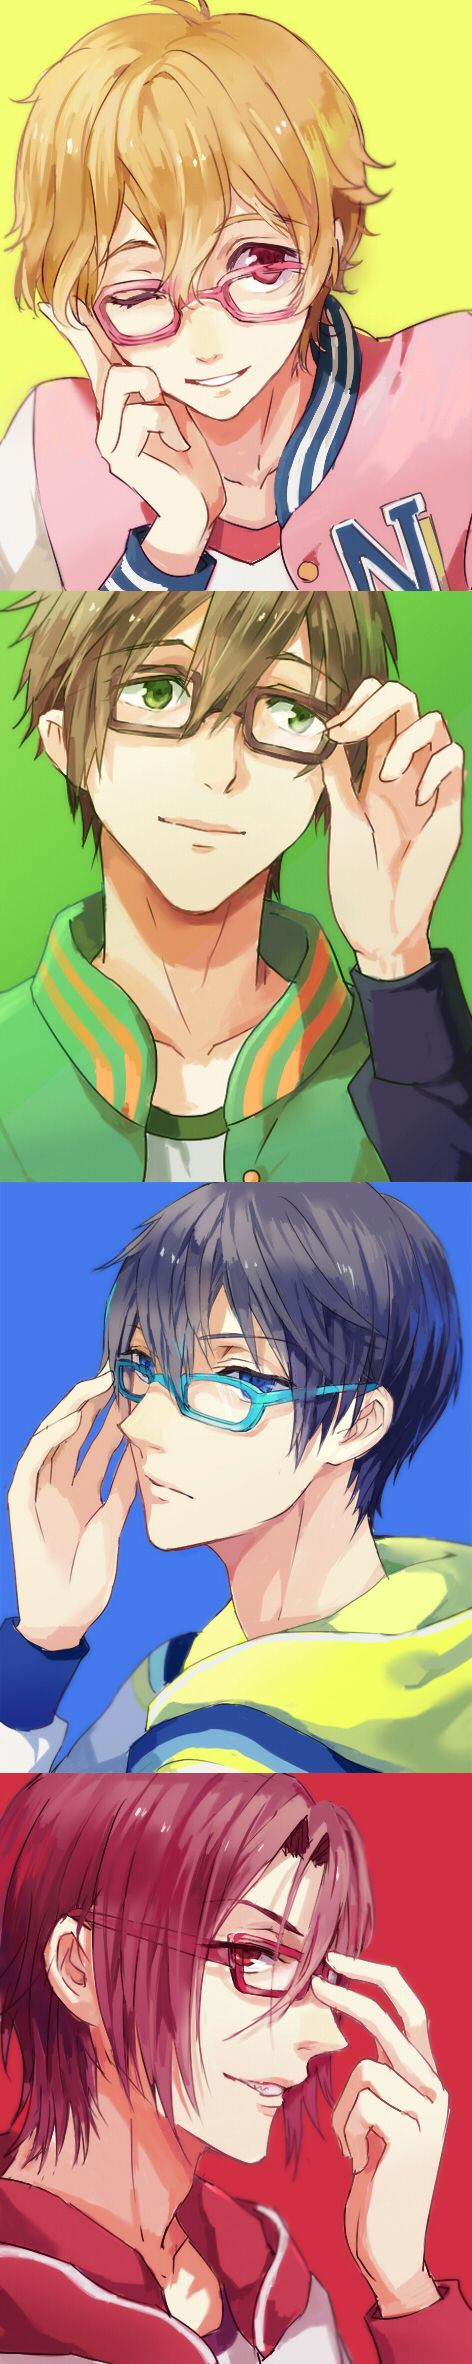 """Free! ~~~ Megane edition :: I just adore a boy with glasses! Don't you? {{ btw, I also like """"Meganebu!"""" which isn't as serious as """"Free!"""" but is a lot of fun on its own }}"""